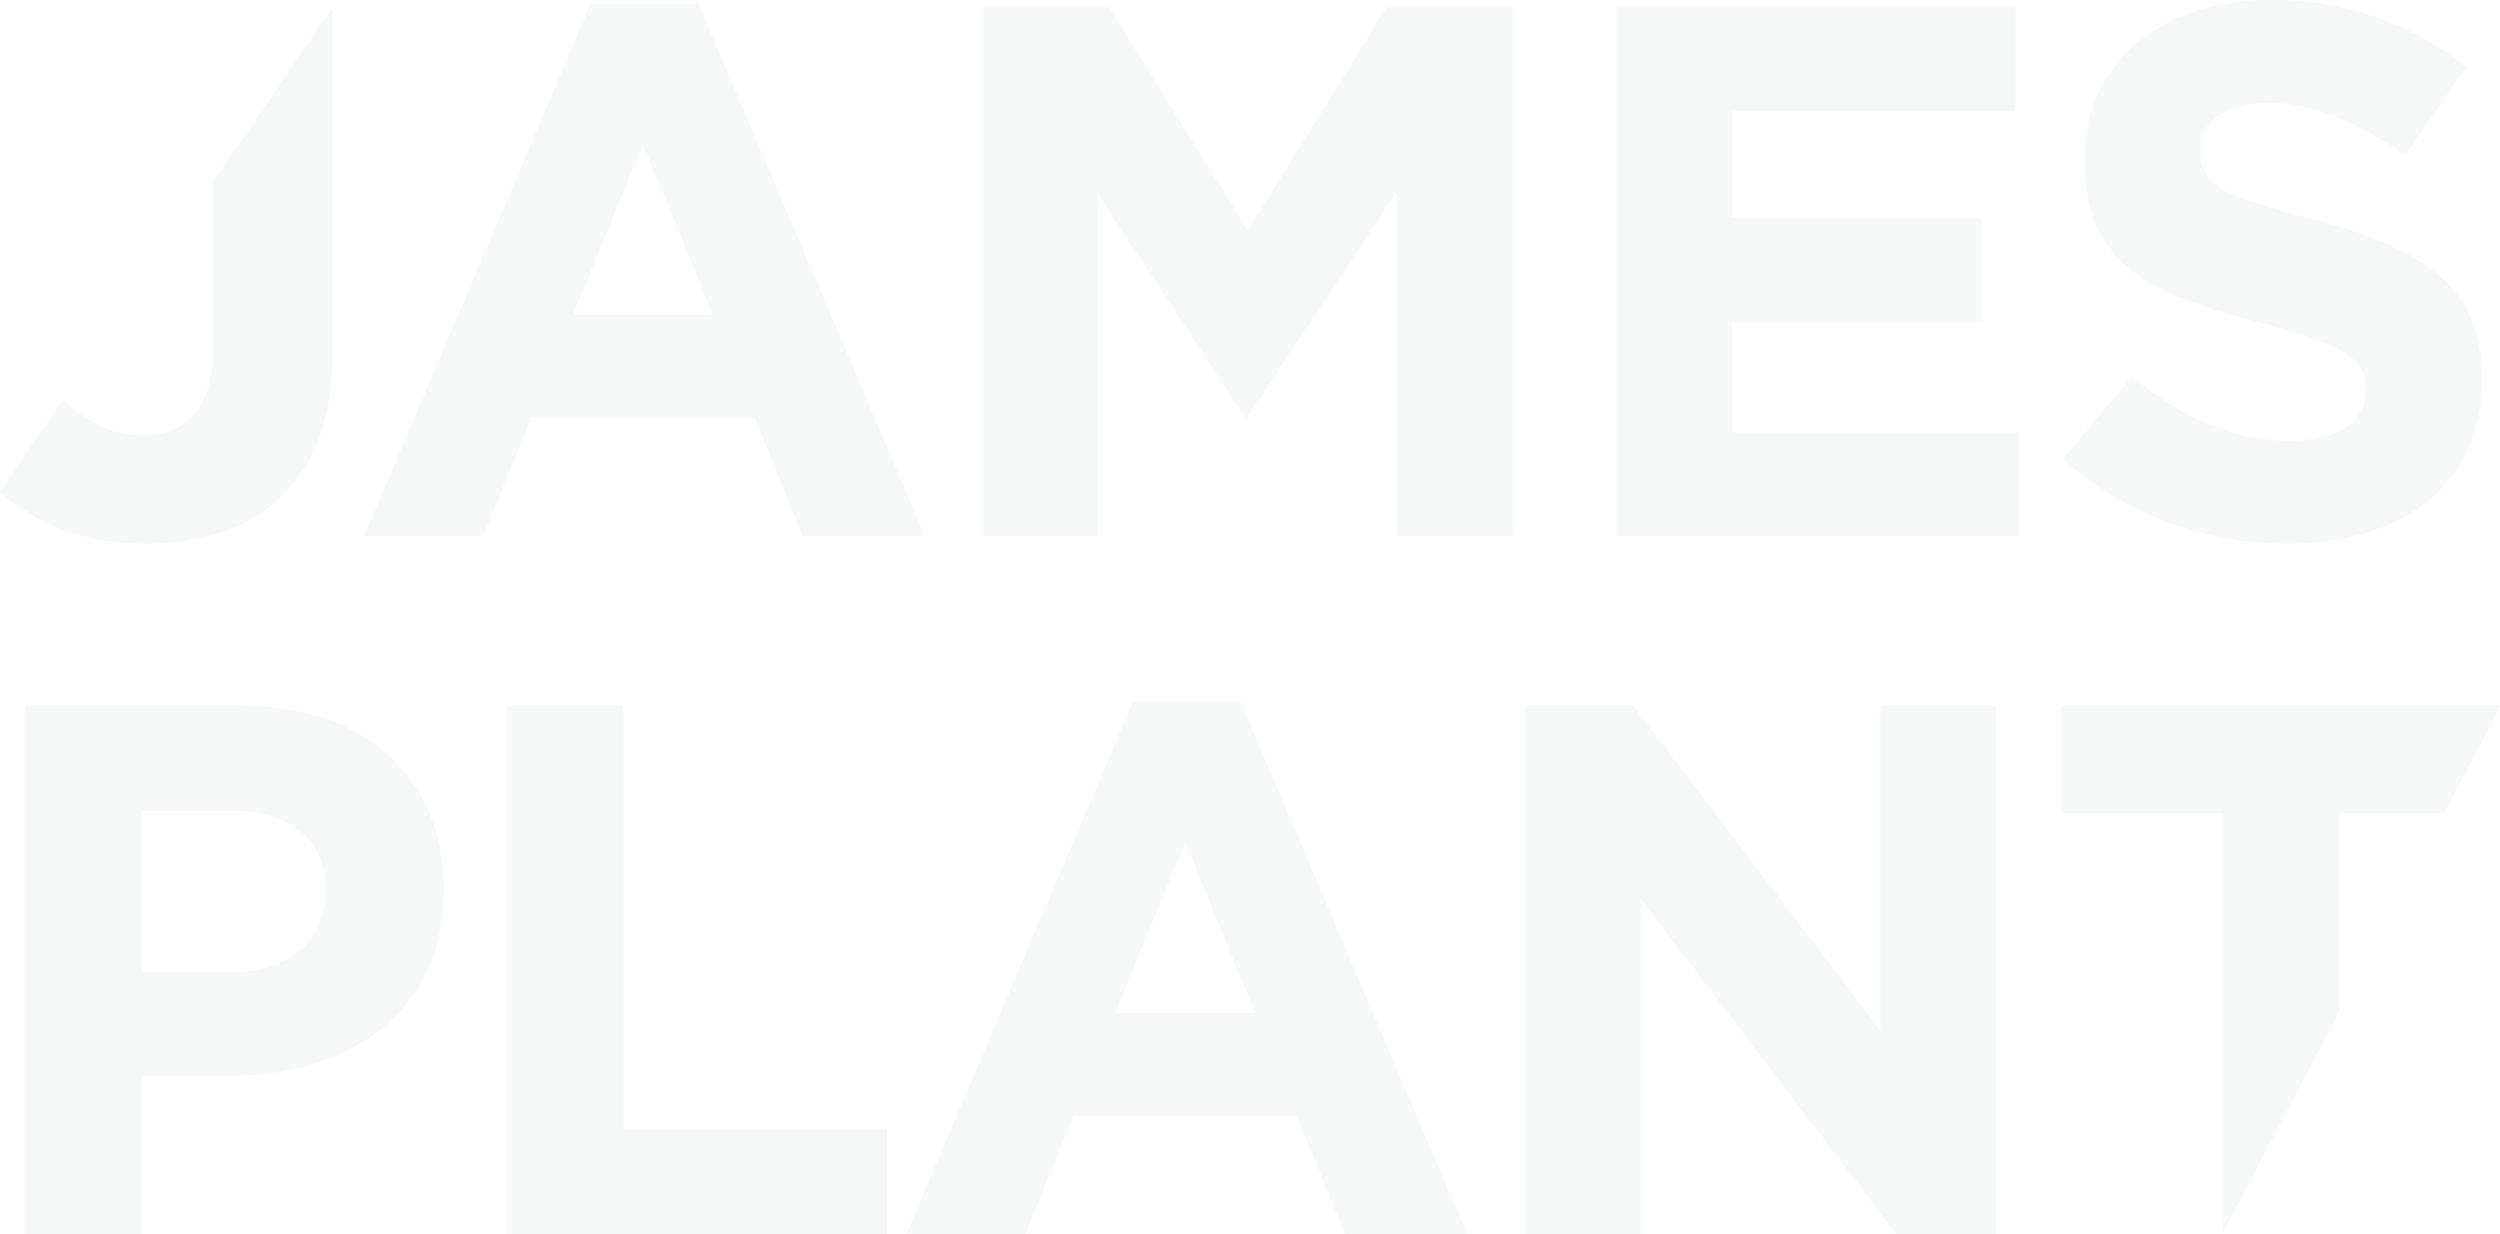 James Plant Design Studio